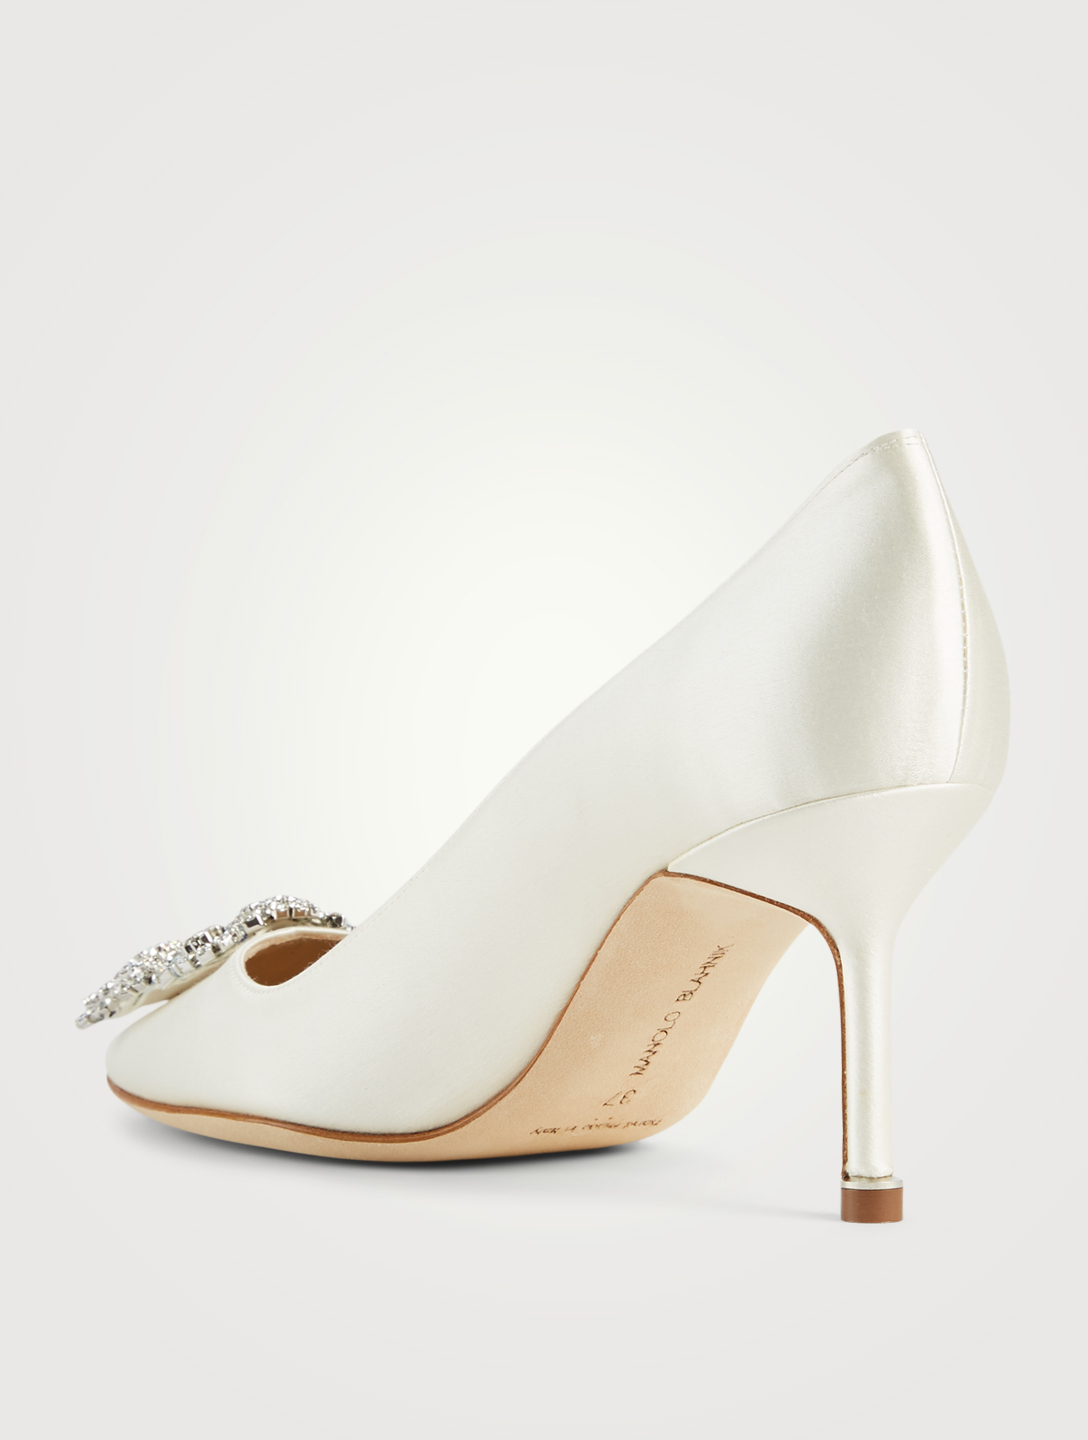 MANOLO BLAHNIK Hangisi 70  Satin Pumps Women's White